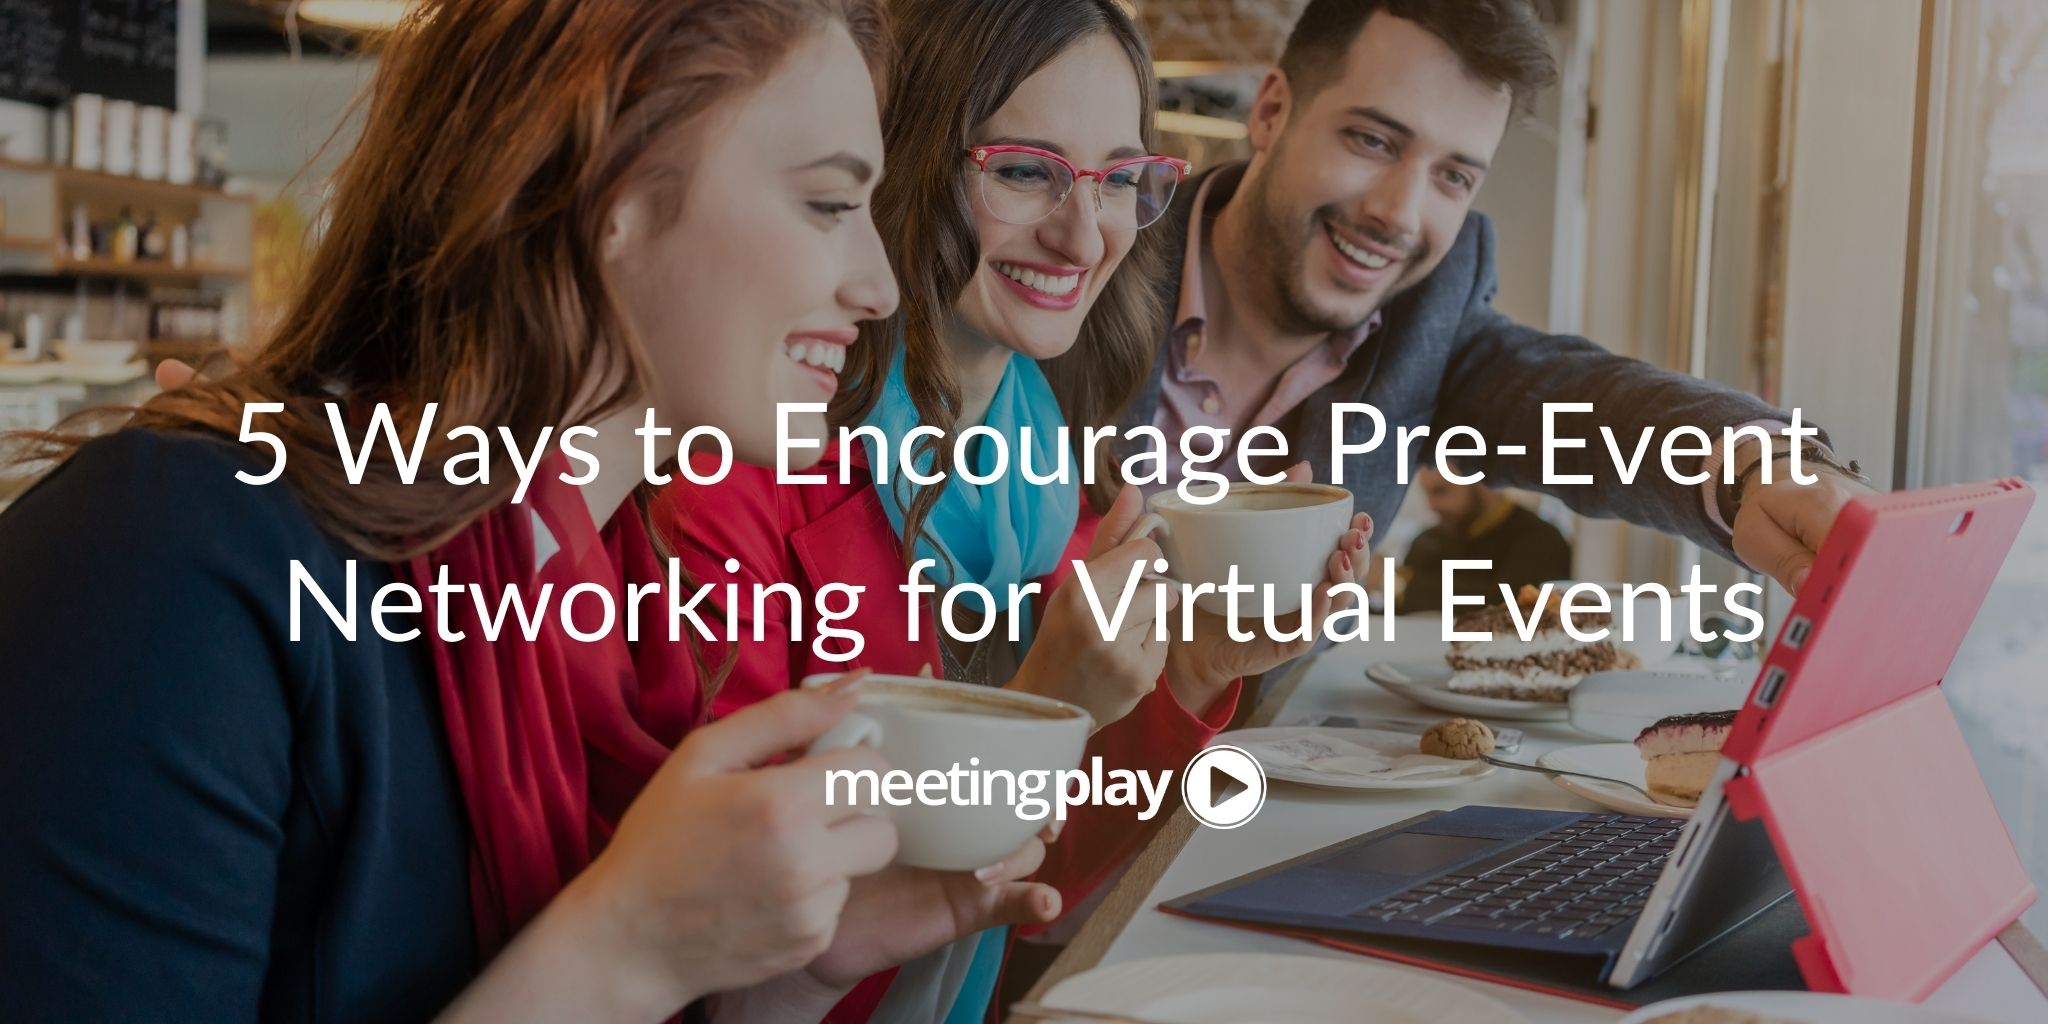 5 Ways to Encourage Pre-Event Networking for Virtual Events